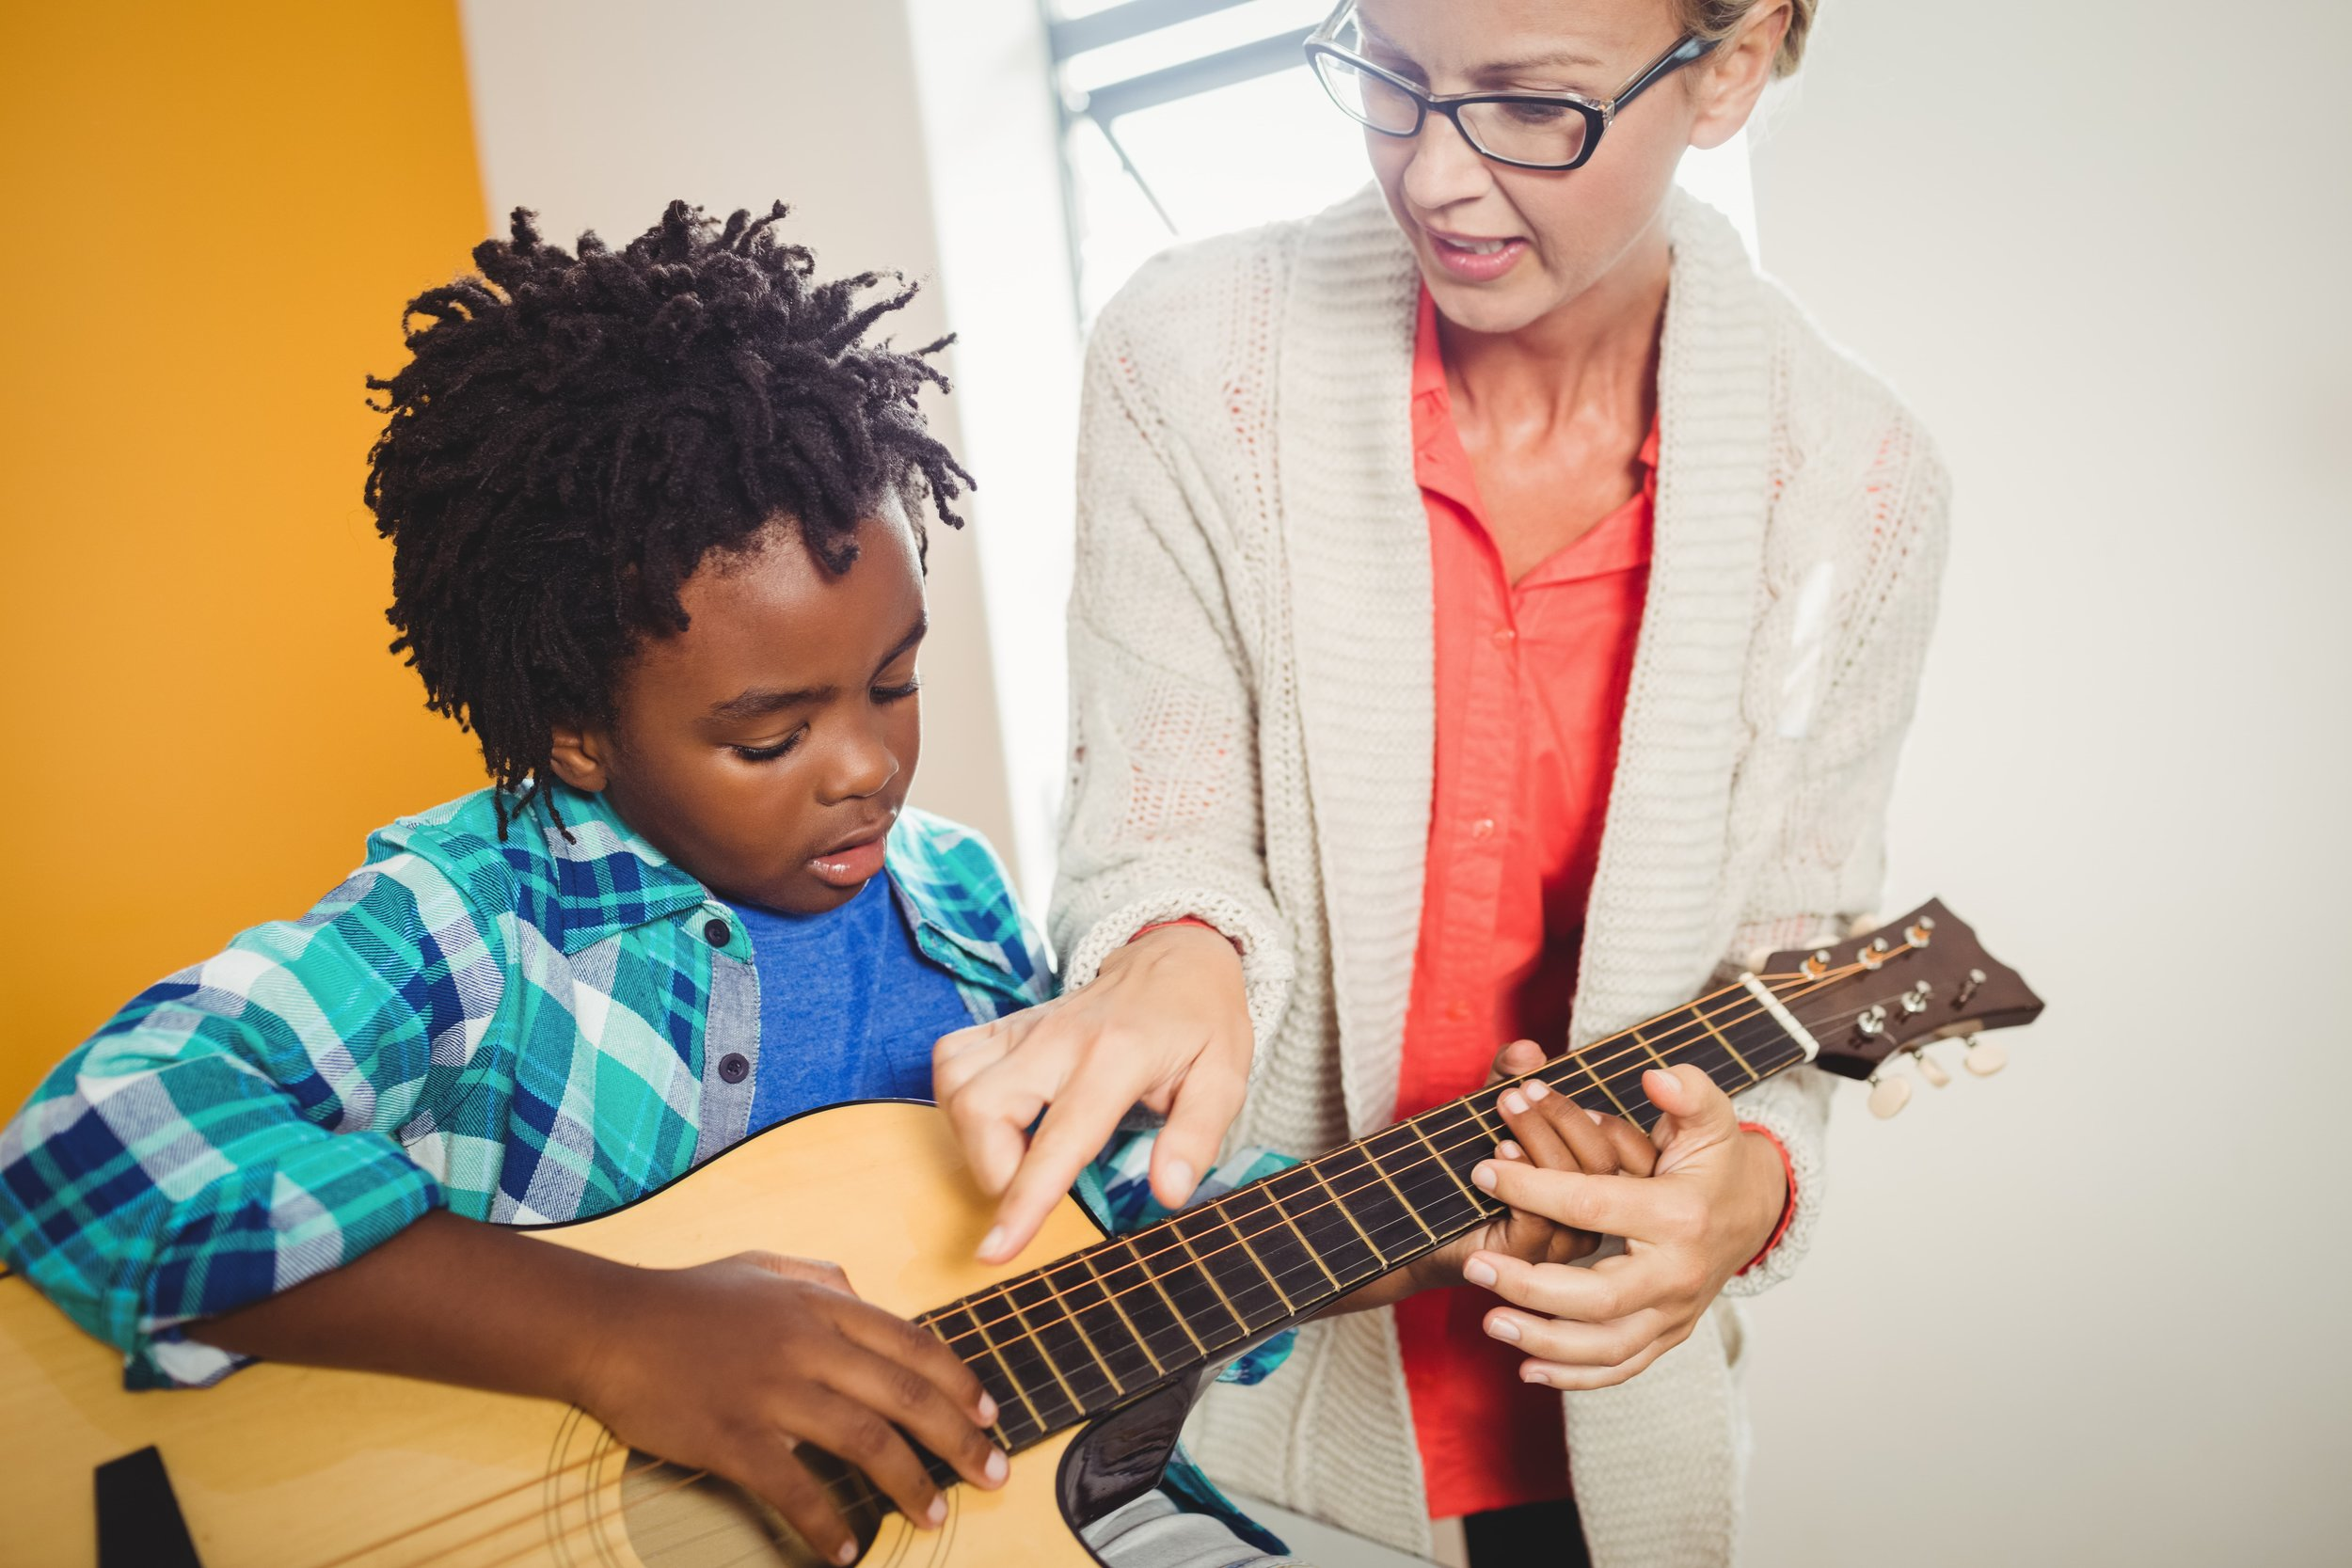 Working with a private music lesson teacher will help a student progress more quickly than playing in band and he is more likely to stick with her lessons.